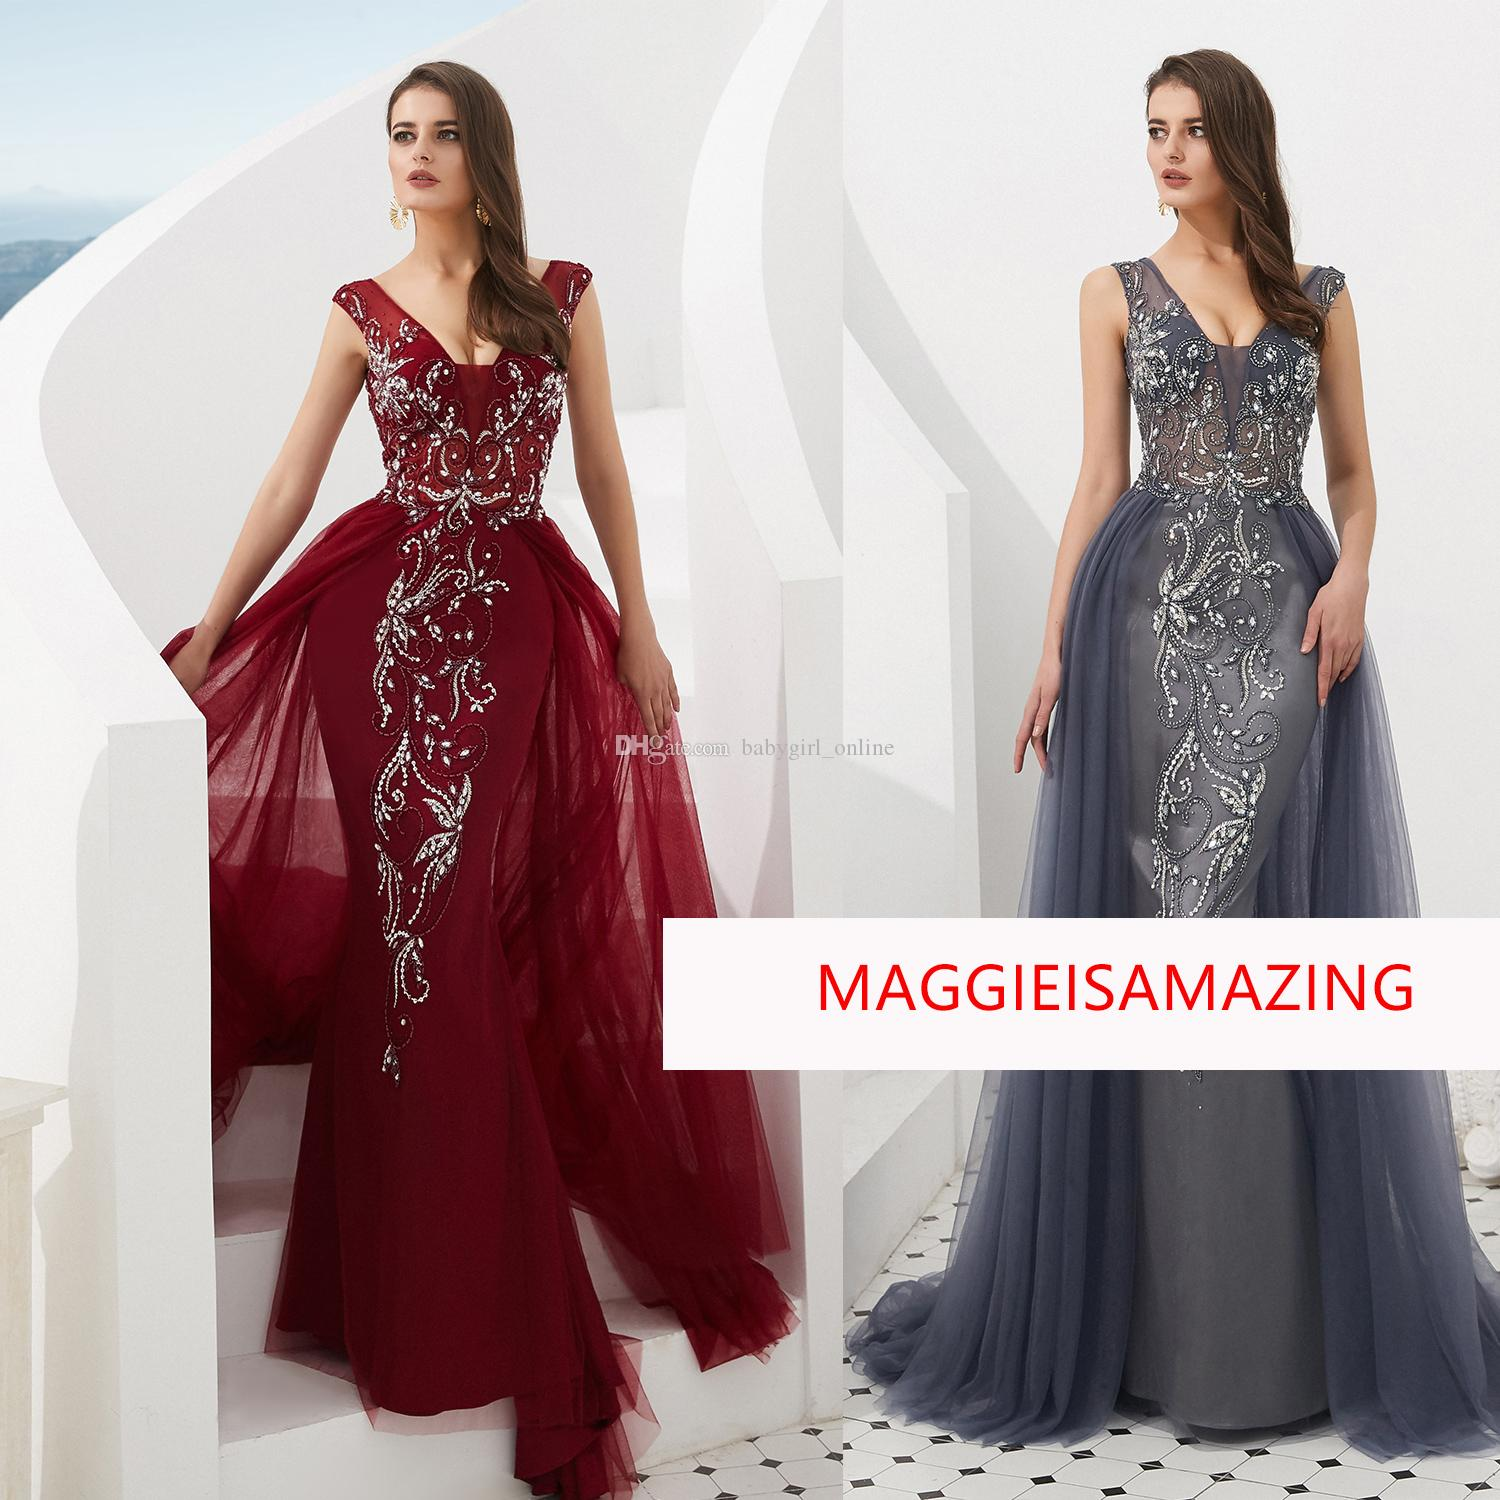 Weddings & Events Taohill Champagne Cocktail Dresses Sparkle Crystal Beaded Short Homecoming Dress Double V-neck Sexy Shiny Mini Prom Gowns